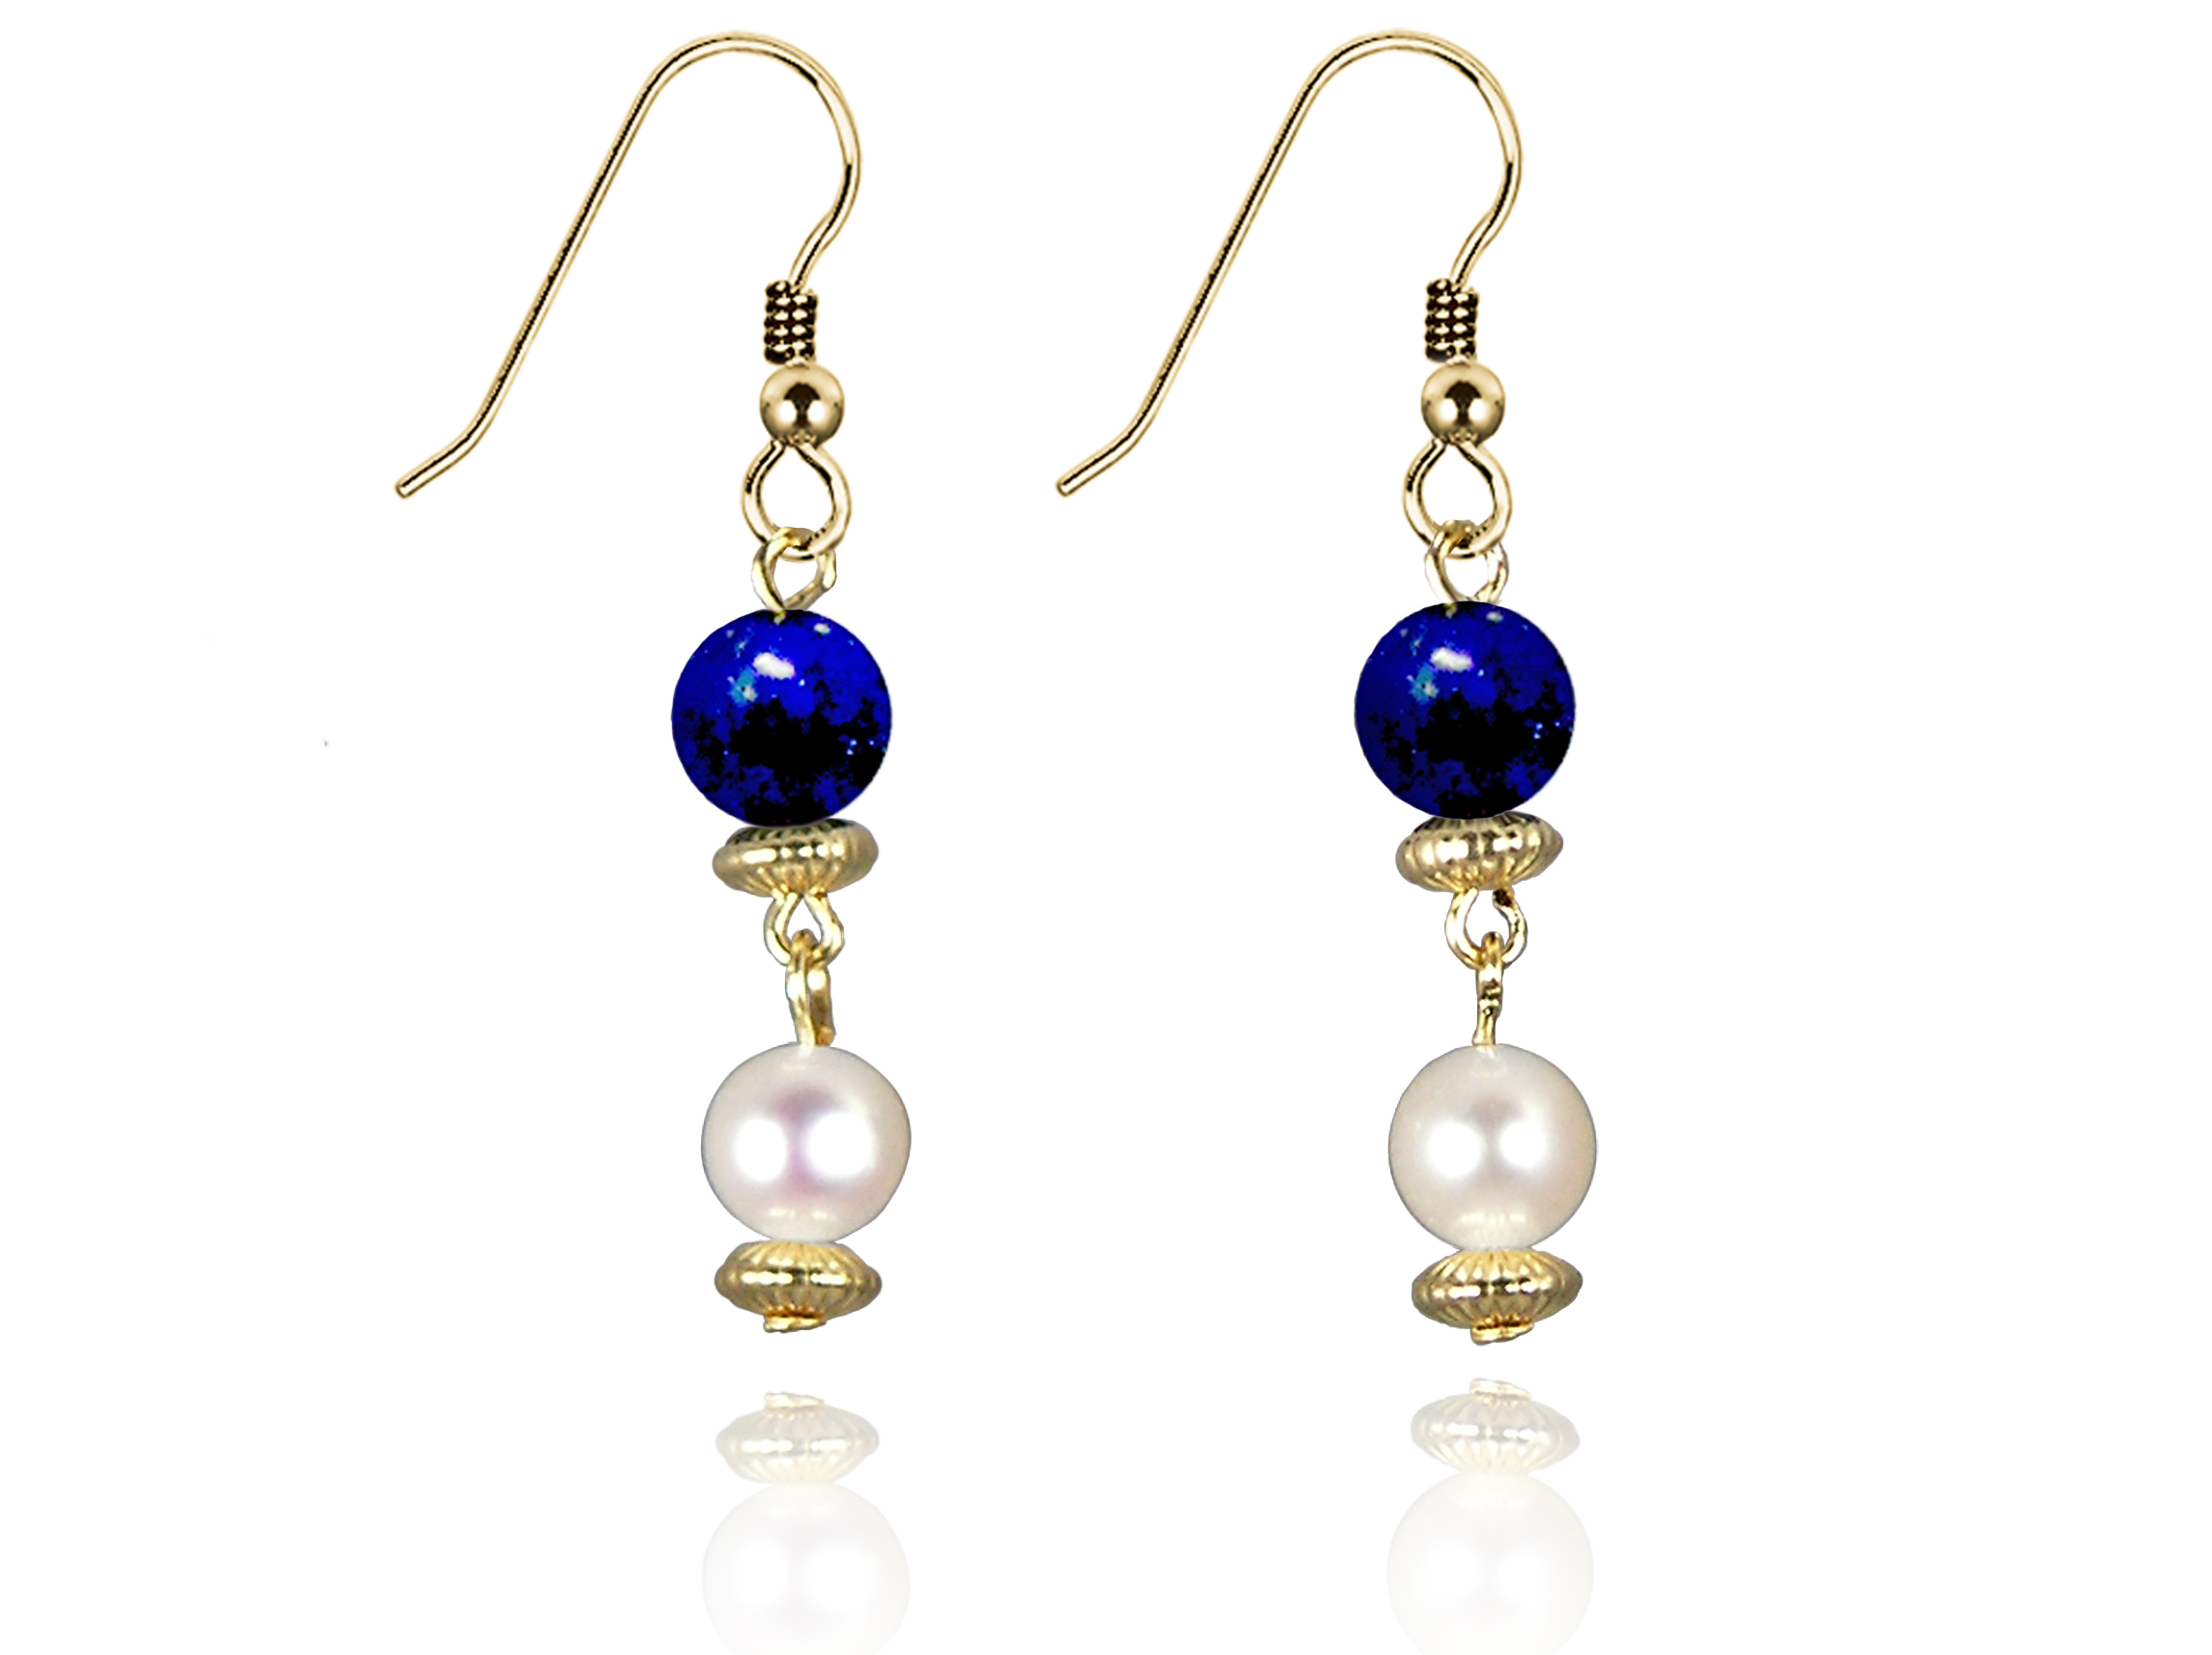 Freshwater Pearl Earrings with Lapis Lazuli in Gold Fill